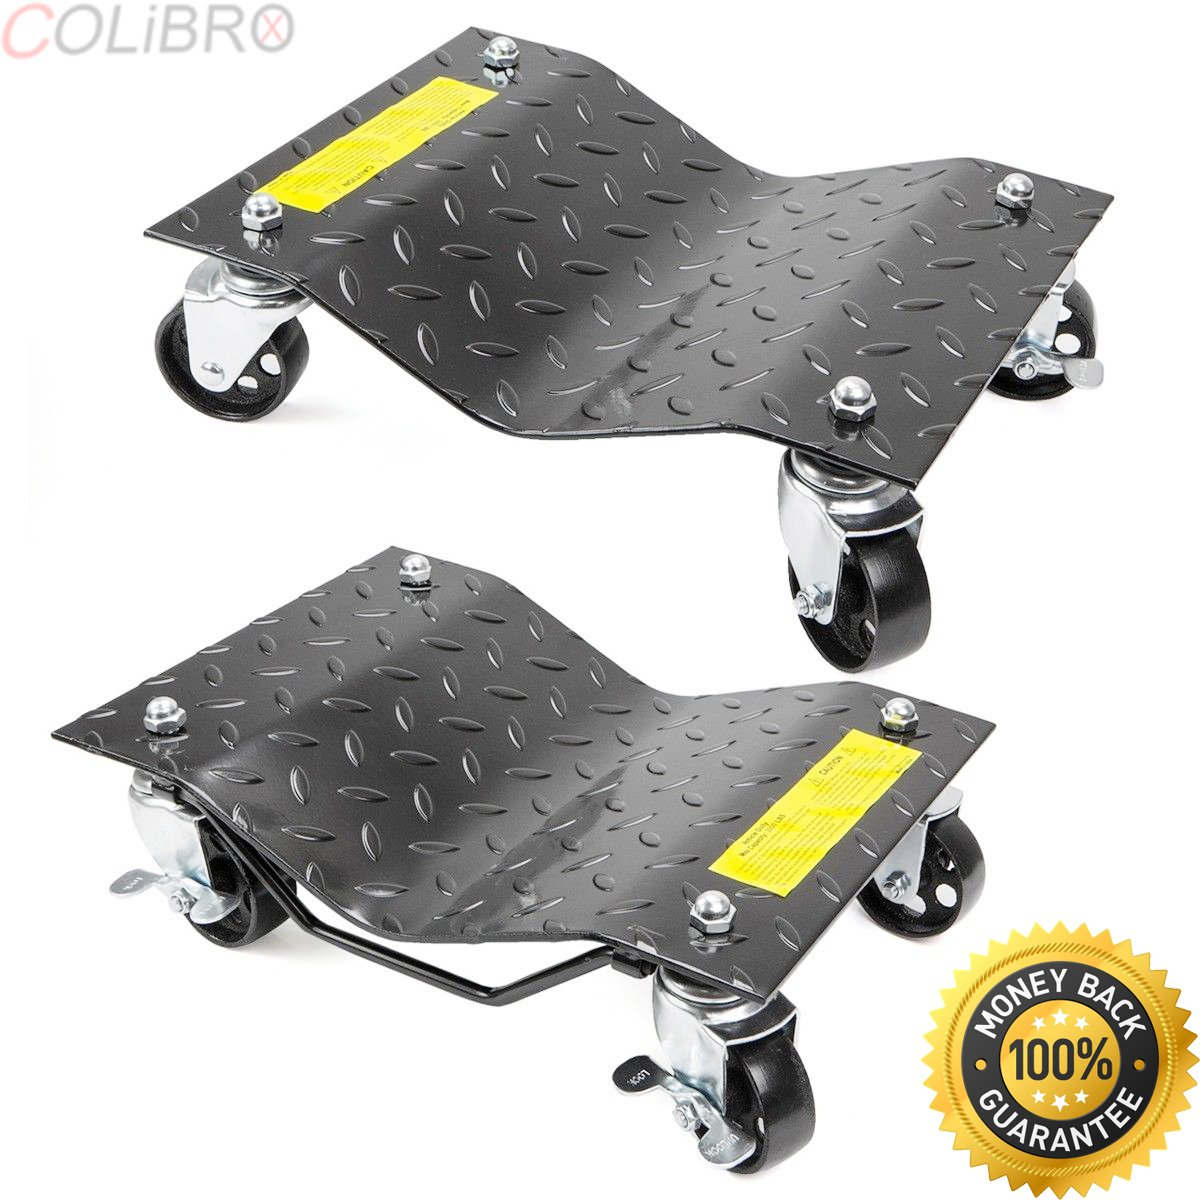 COLIBROX--New 1pair Auto Dolly Car Dolly Wheel Tire 12''x16'' Skate 3000lb Repair Slide. car wheel dolly harbor freight. vehicle positioning wheel dolly. best car dollies home depot on amazon.